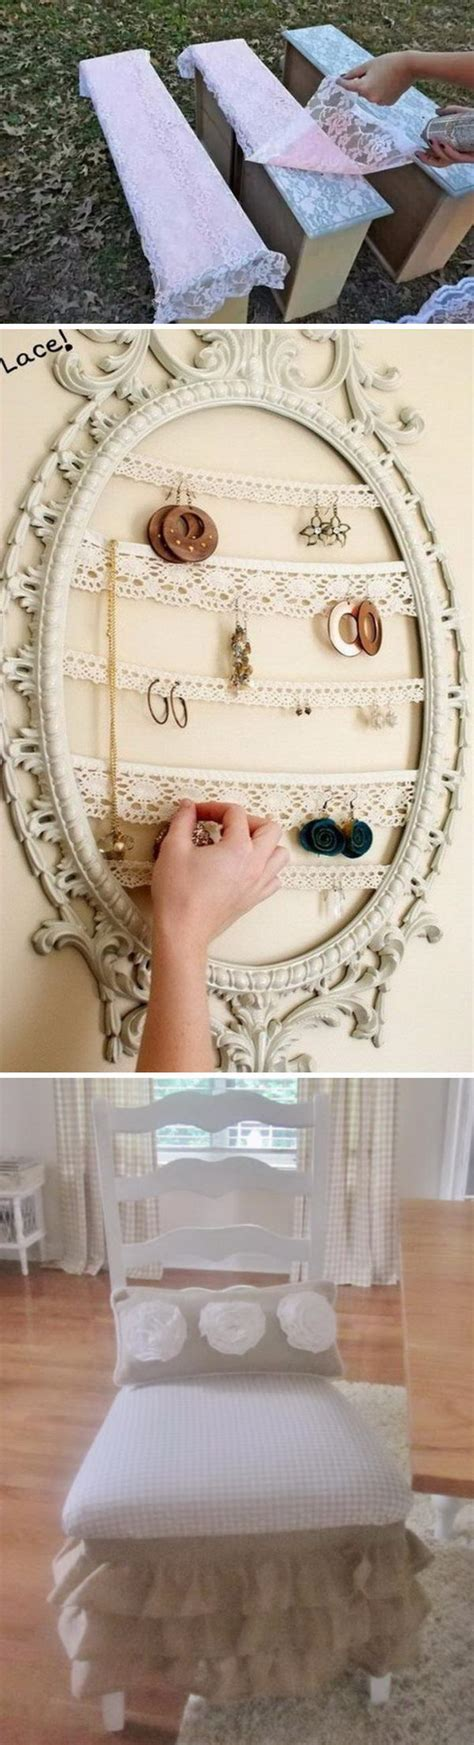 how to do shabby chic furniture fantistic diy shabby chic furniture ideas tutorials hative